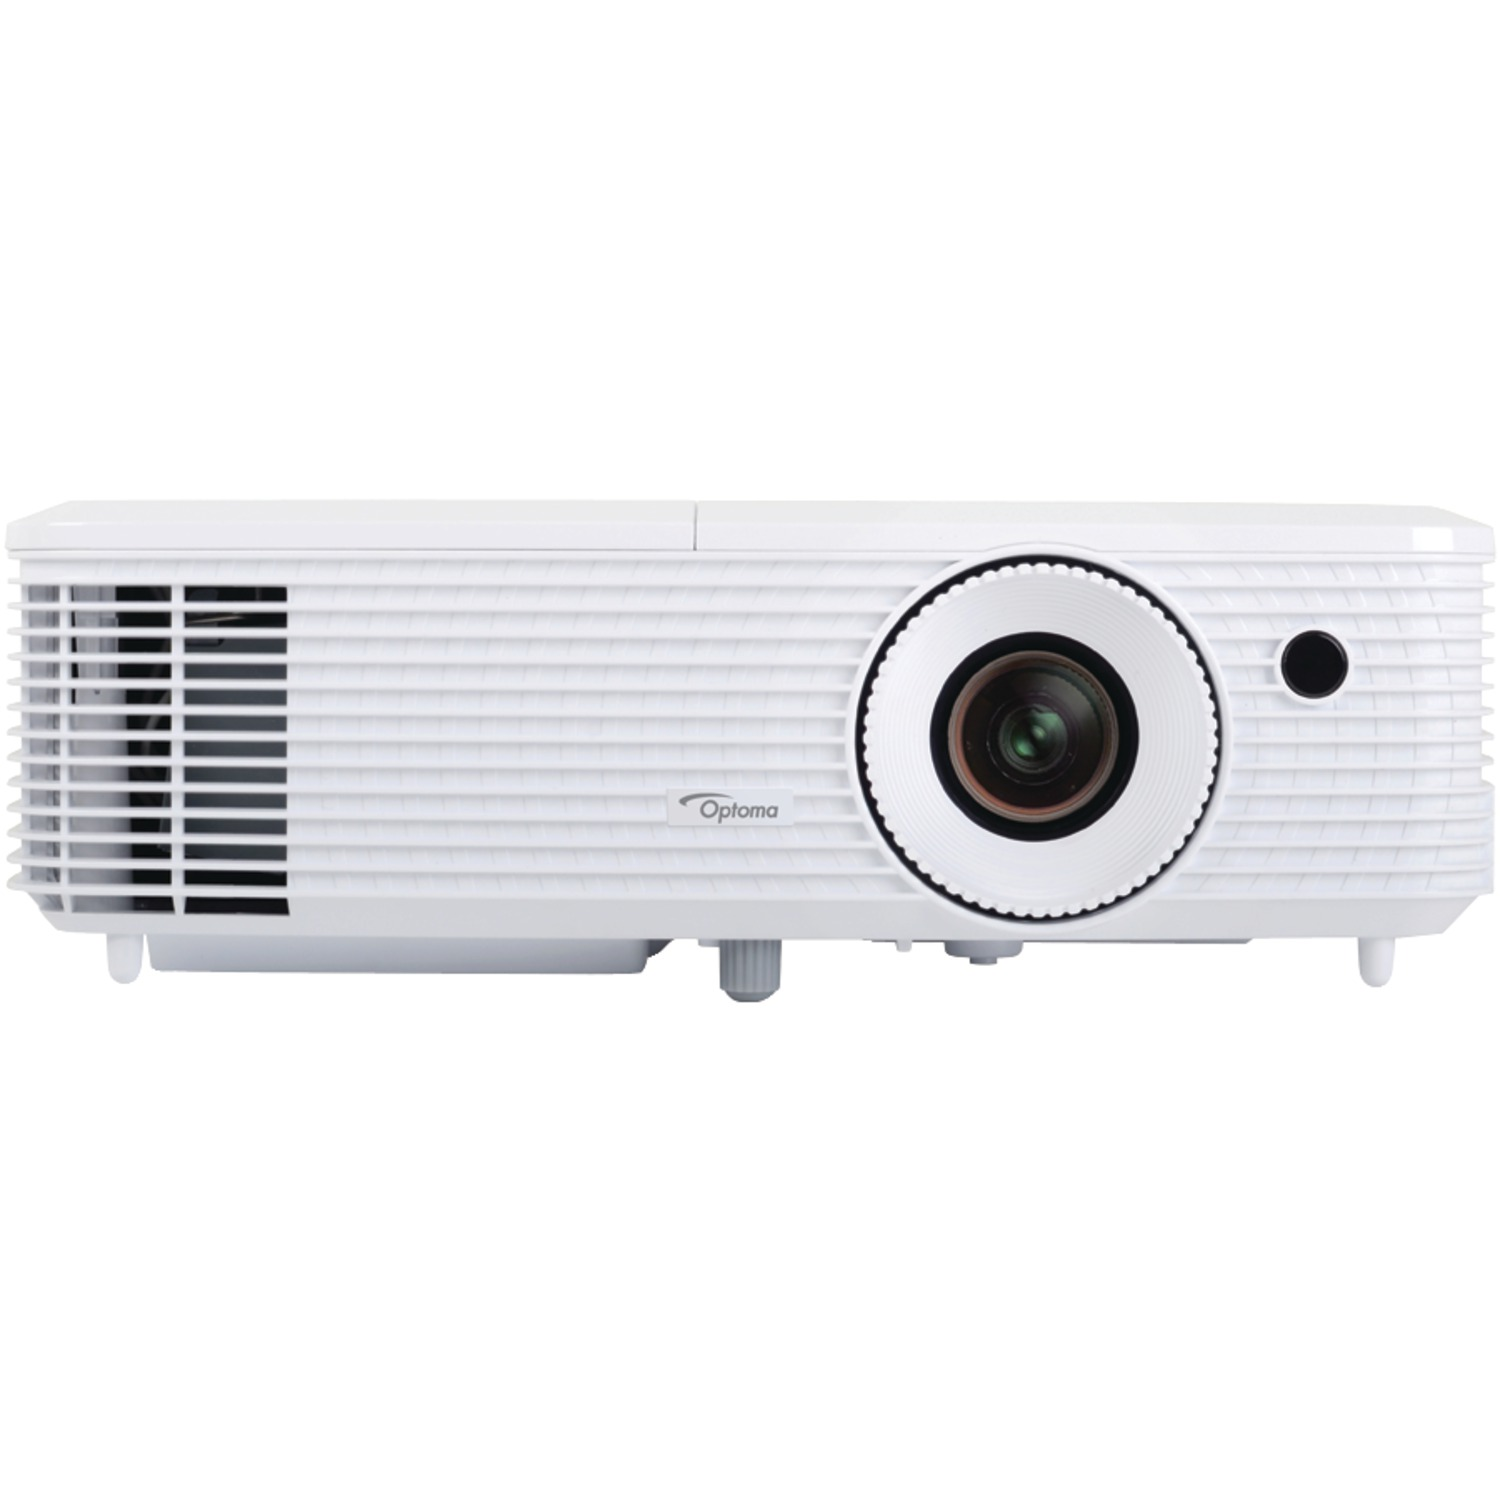 Optoma hd29darbee hd29darbee 1080p hd home theater projector for Hd projector